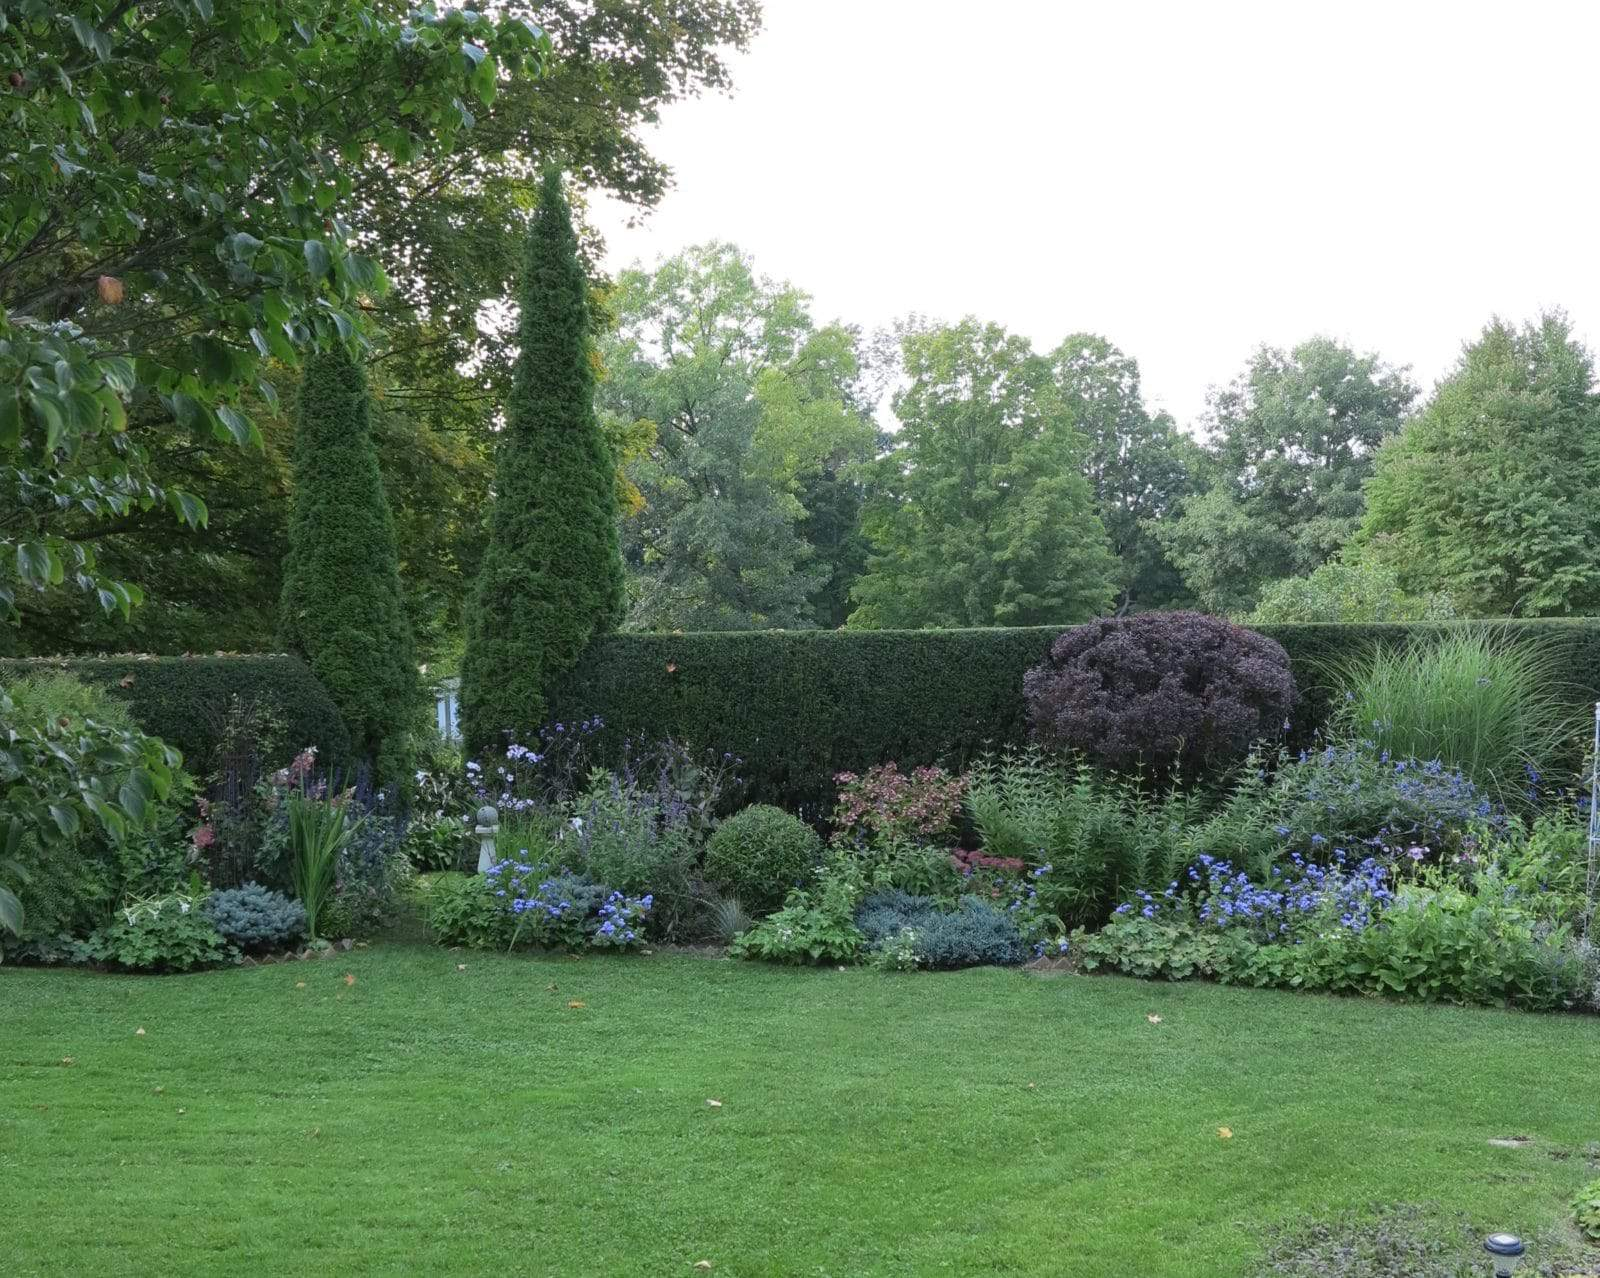 Two tall cedars act as punctuation in this large garden, and also signal where the entrance is to the vegetable garden on the other side of the hedge.